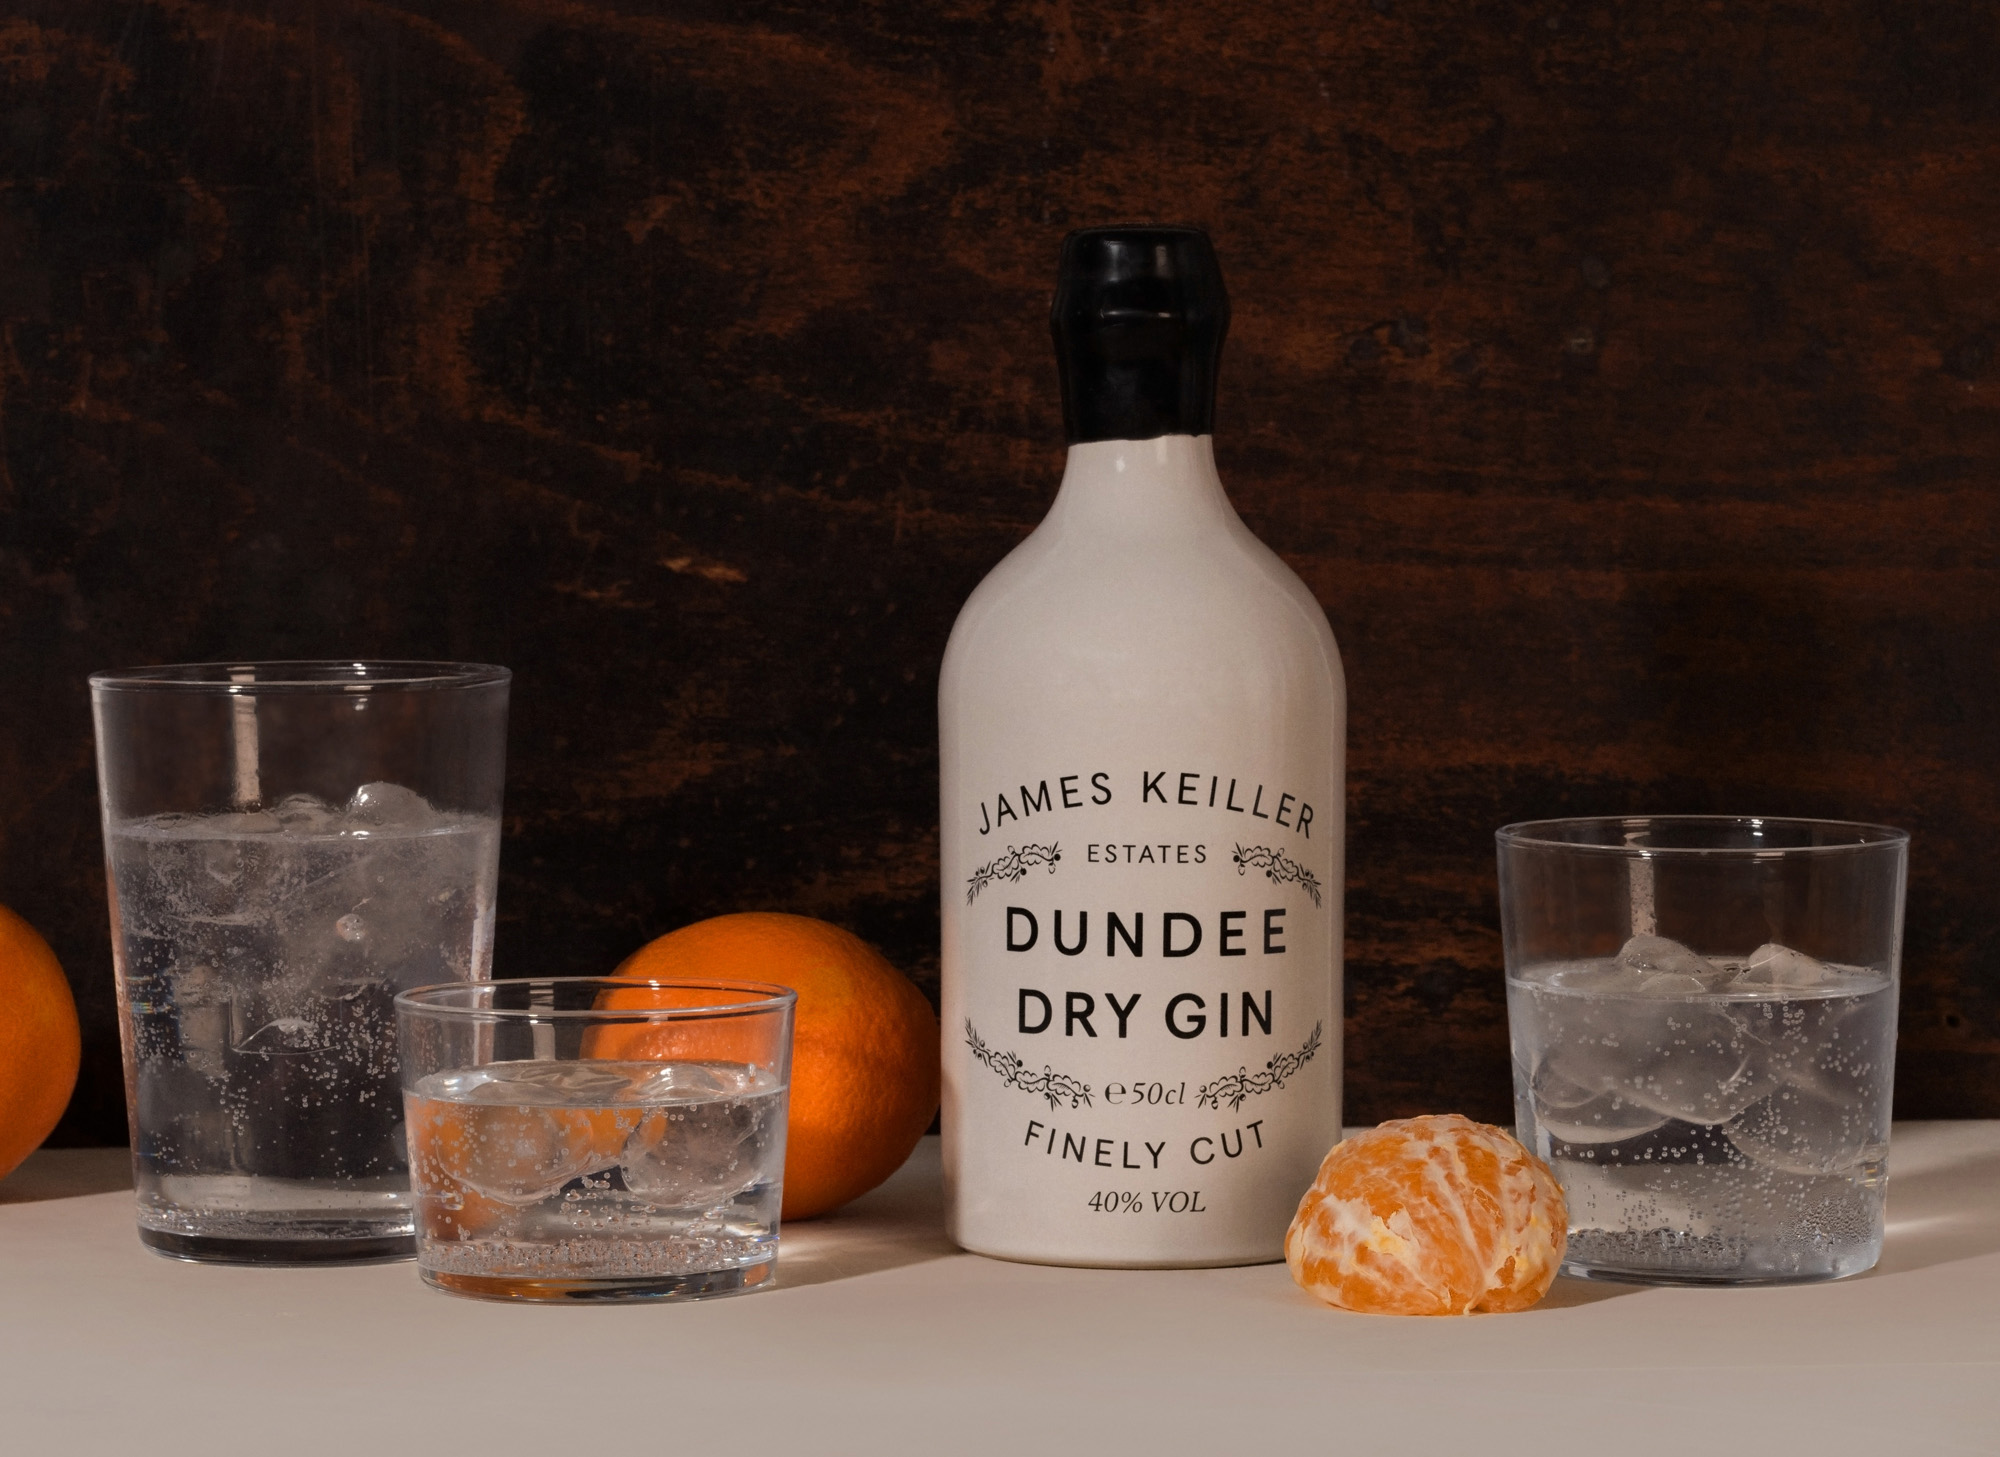 Keillers Dundee Dry Gin with oranges and glasses of liquid and ice